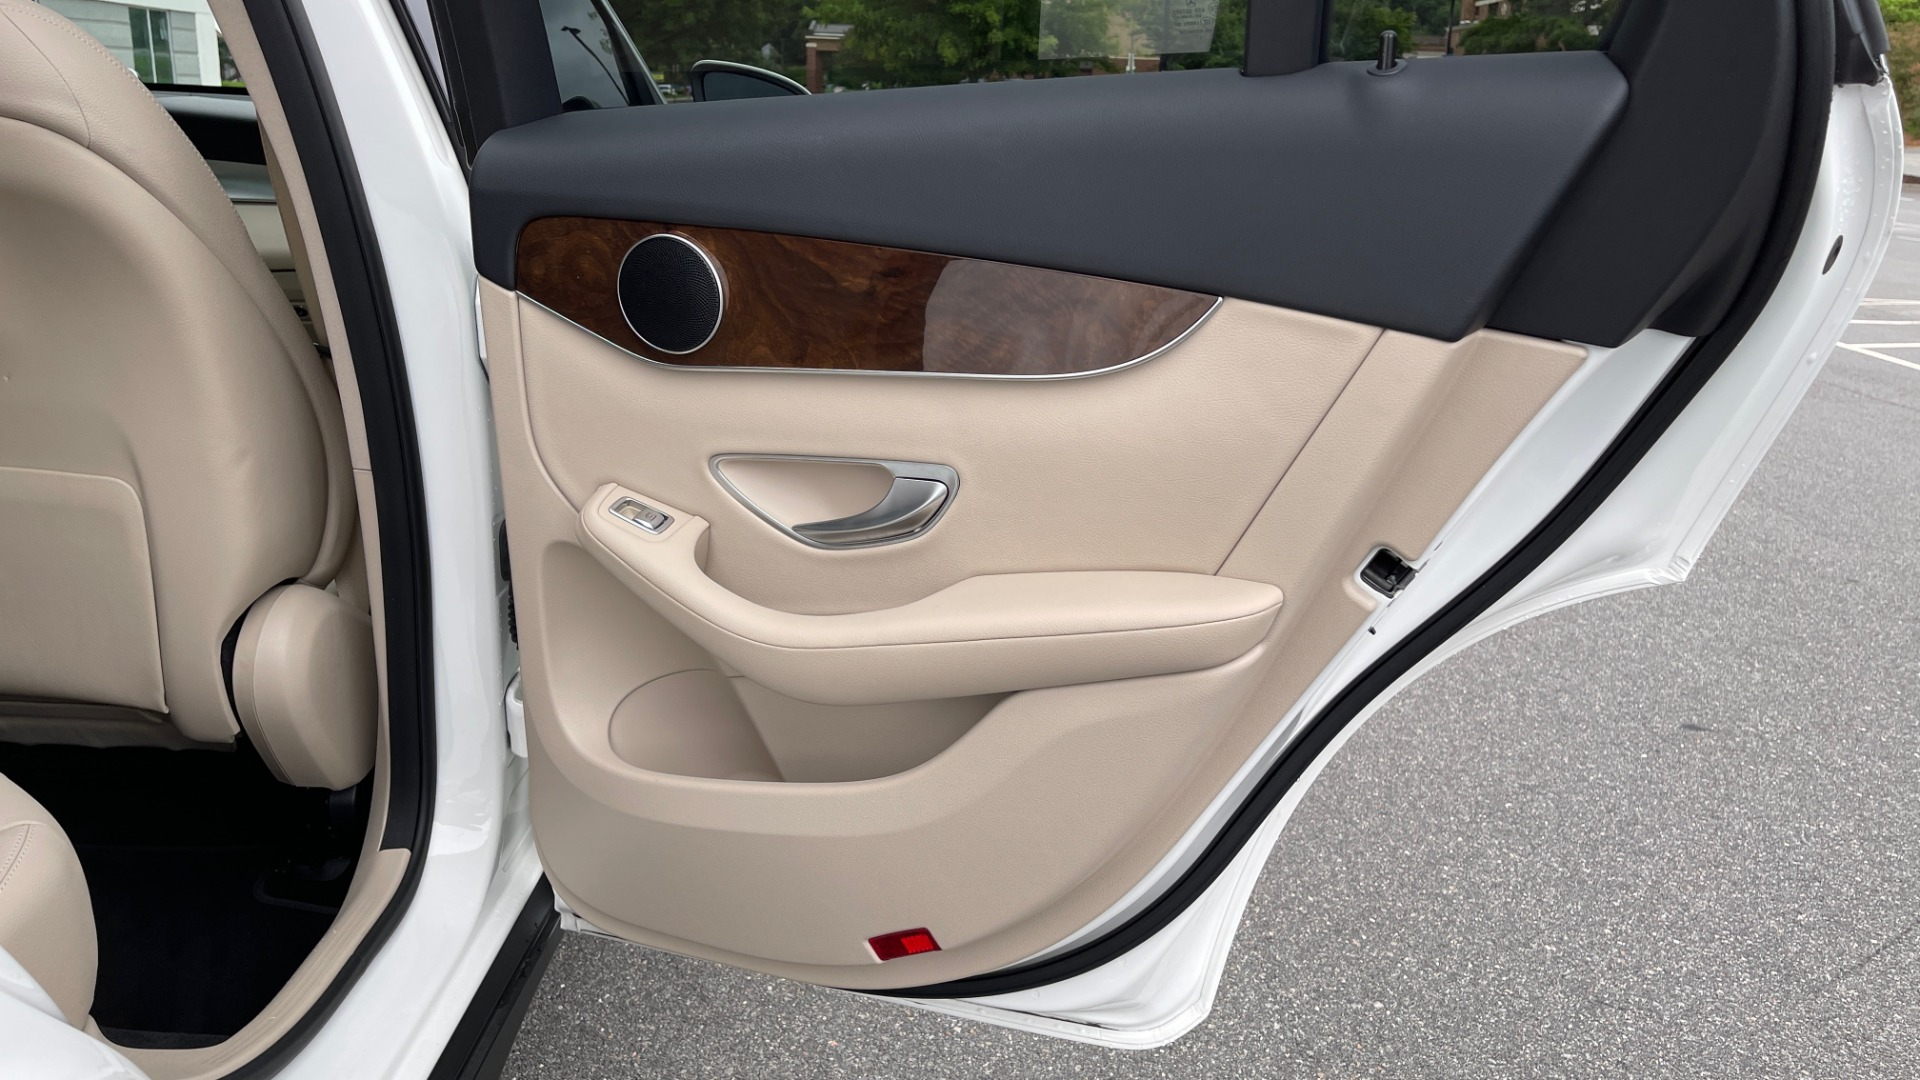 Used 2018 Mercedes-Benz GLC 300 PREMIUM / PANO-ROOF / HTD STS / PARK ASST / REARVIEW for sale $34,613 at Formula Imports in Charlotte NC 28227 51